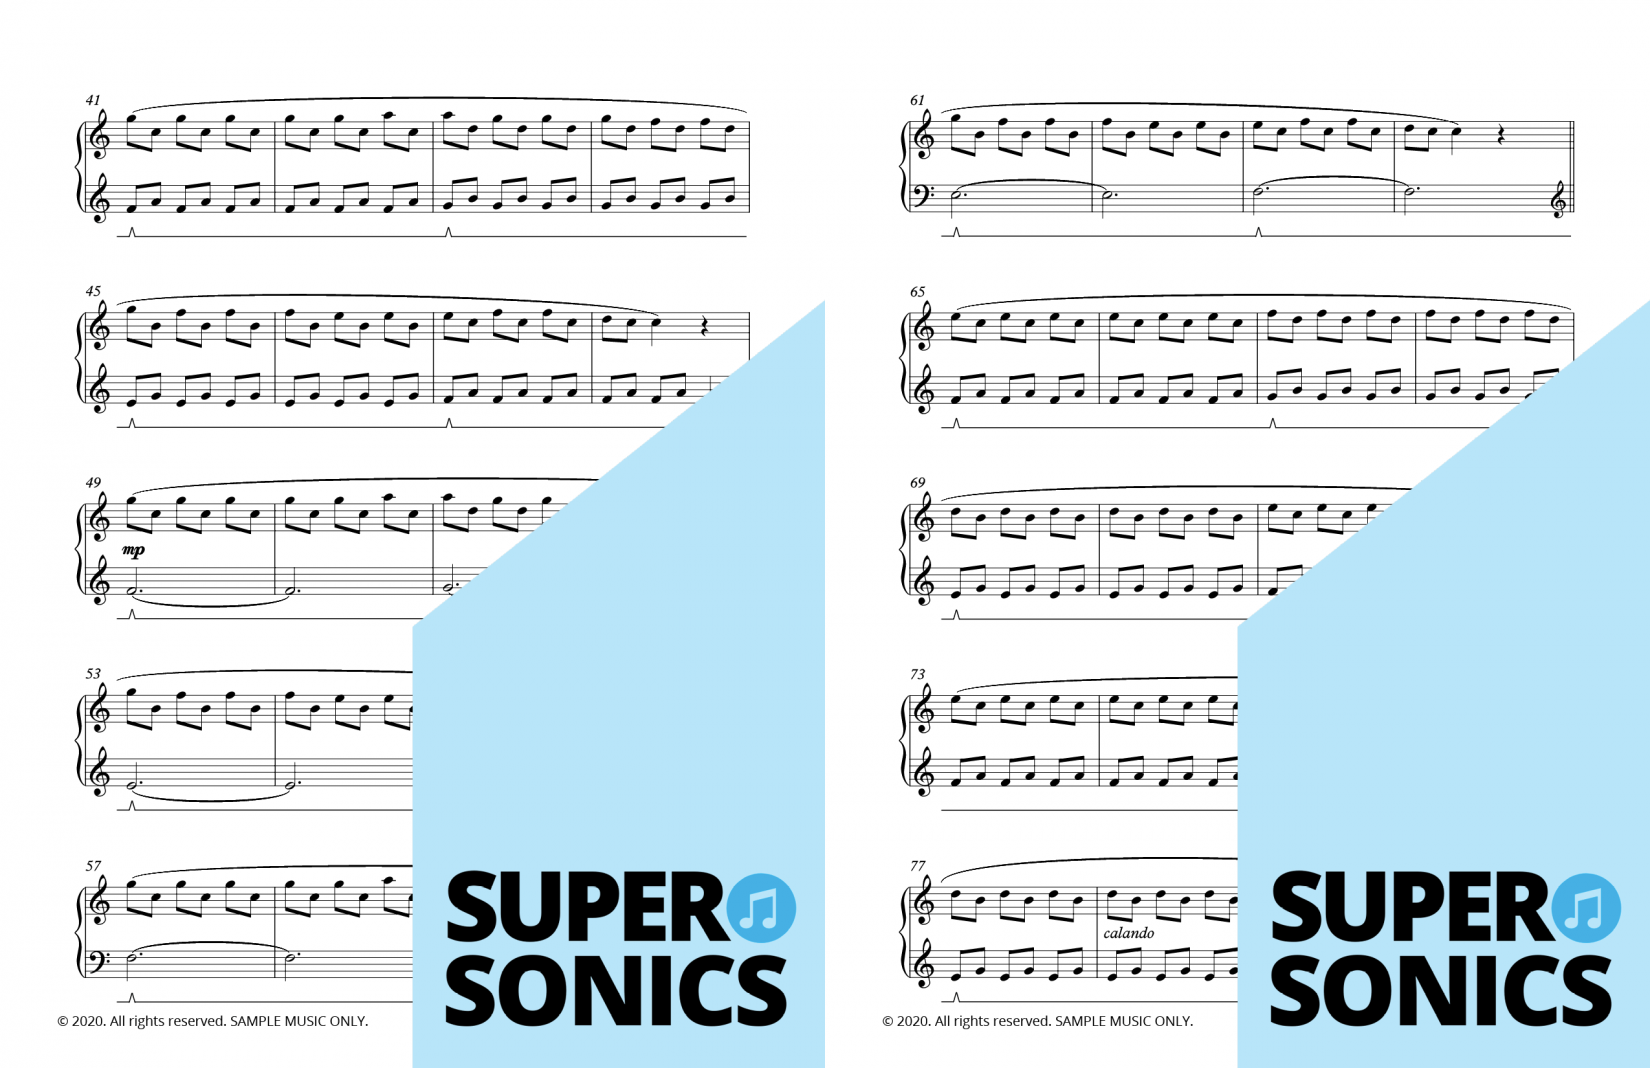 Supersonics Piano Method Level 4 Out of the Ordinary sample